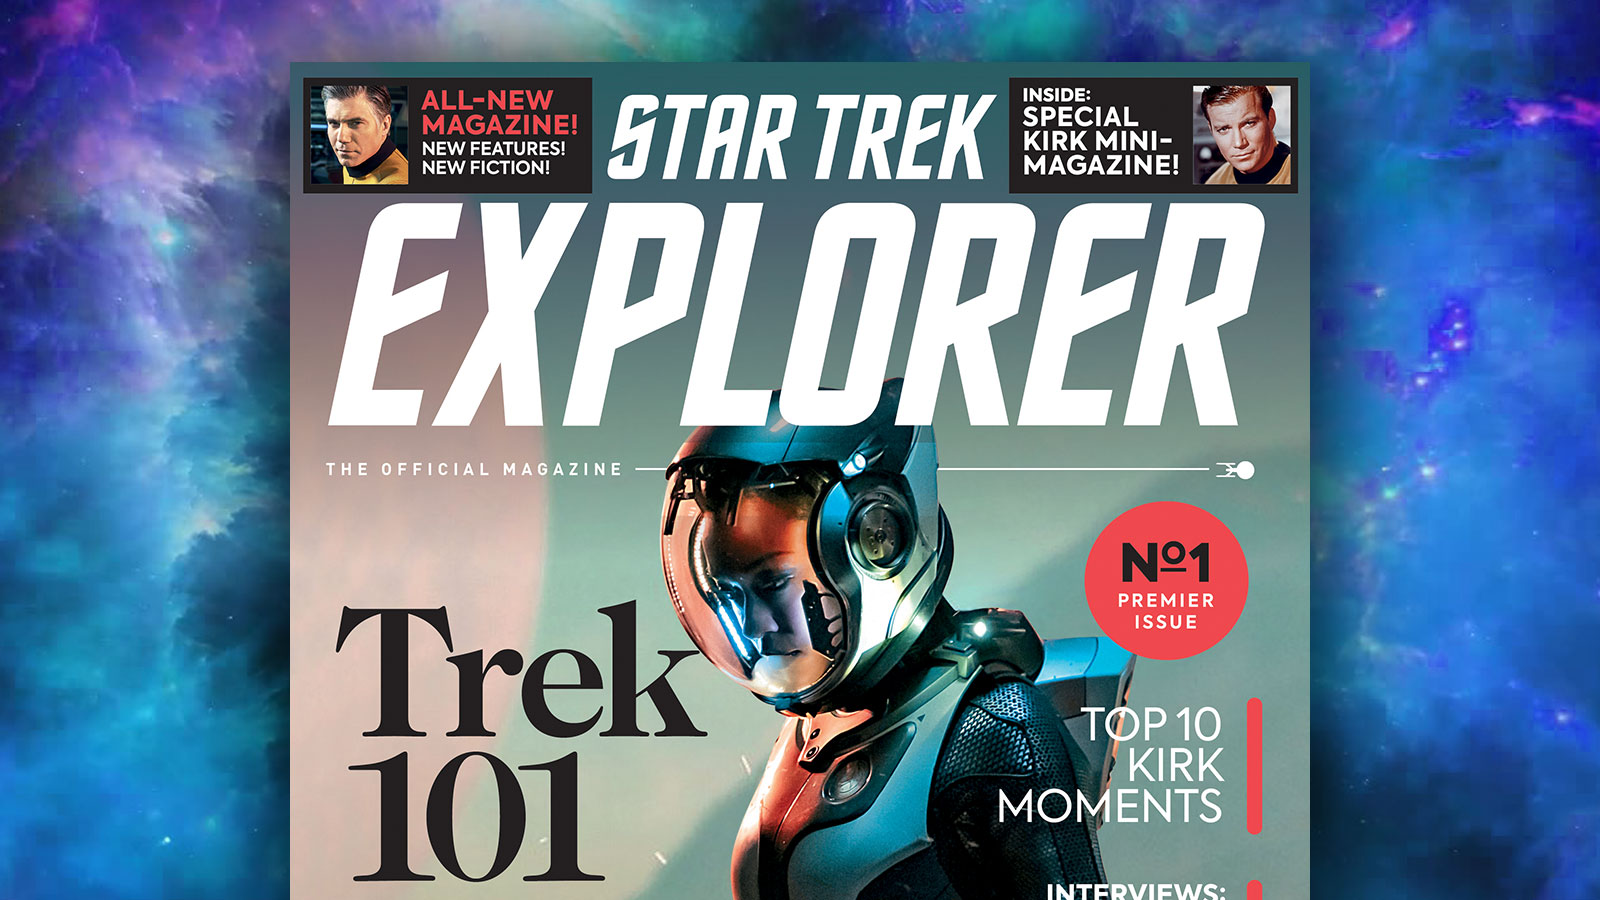 The Official Star Trek Magazine Gets A New Name & Updated Look